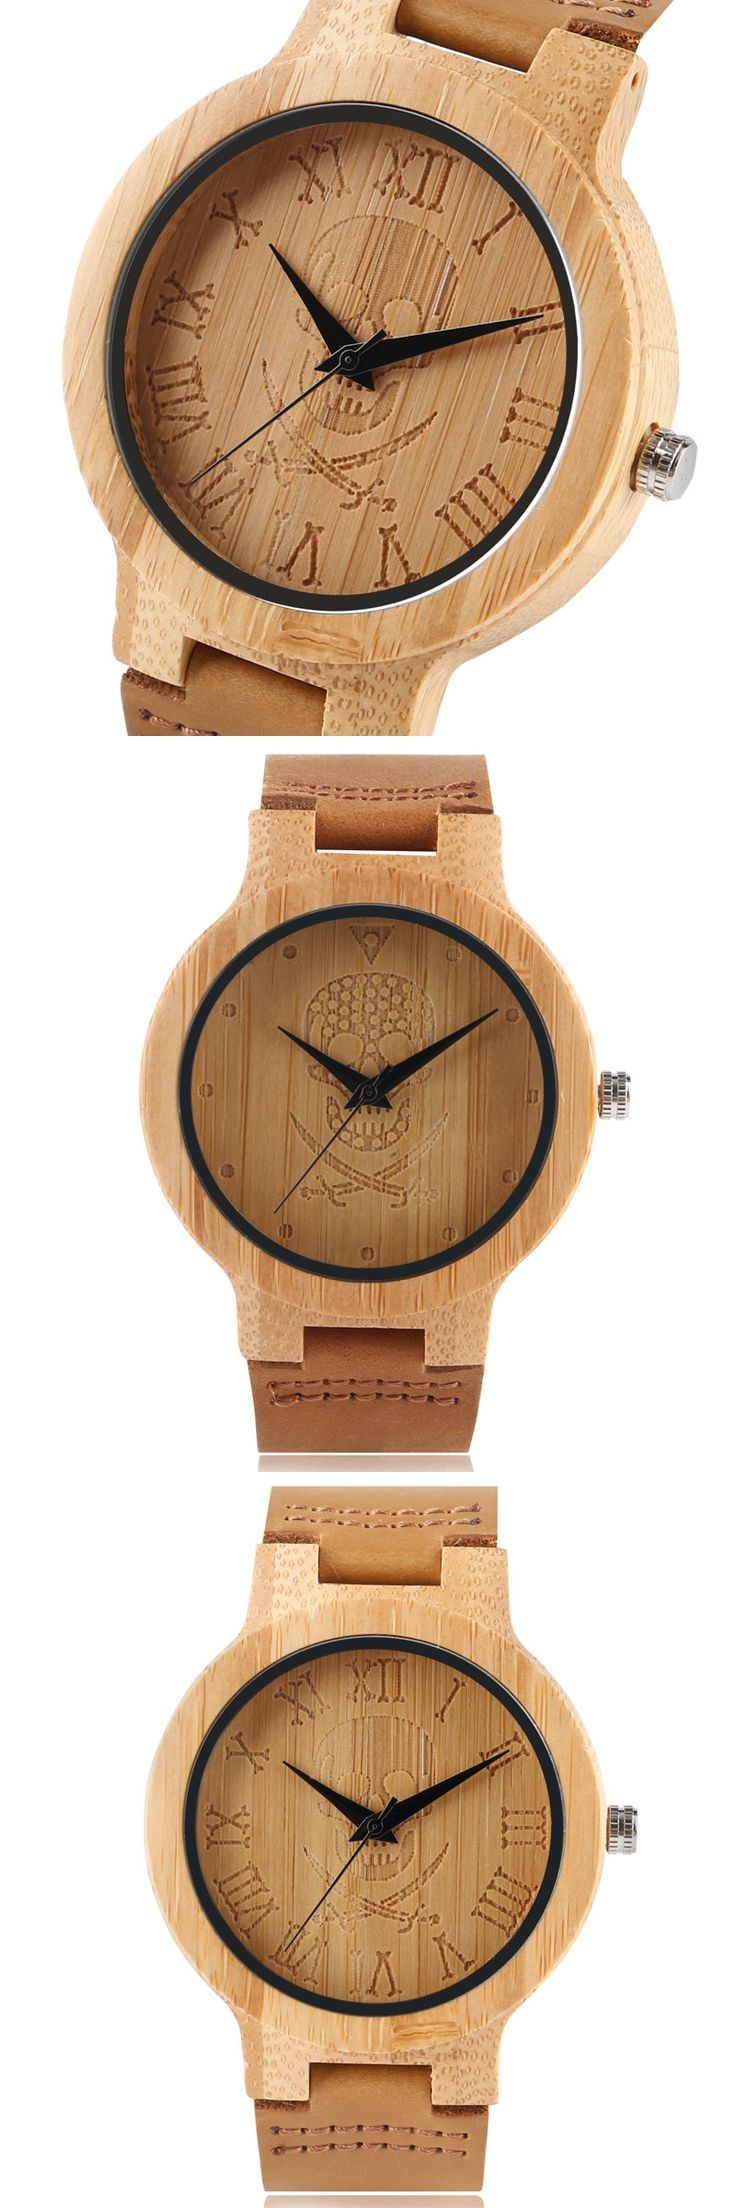 Creative Wooden Watch Genuine Leather Band Strap Trendy Wrist Watch Skull Novel Cool Handmade Bamboo Pirate Dial Montre en bois